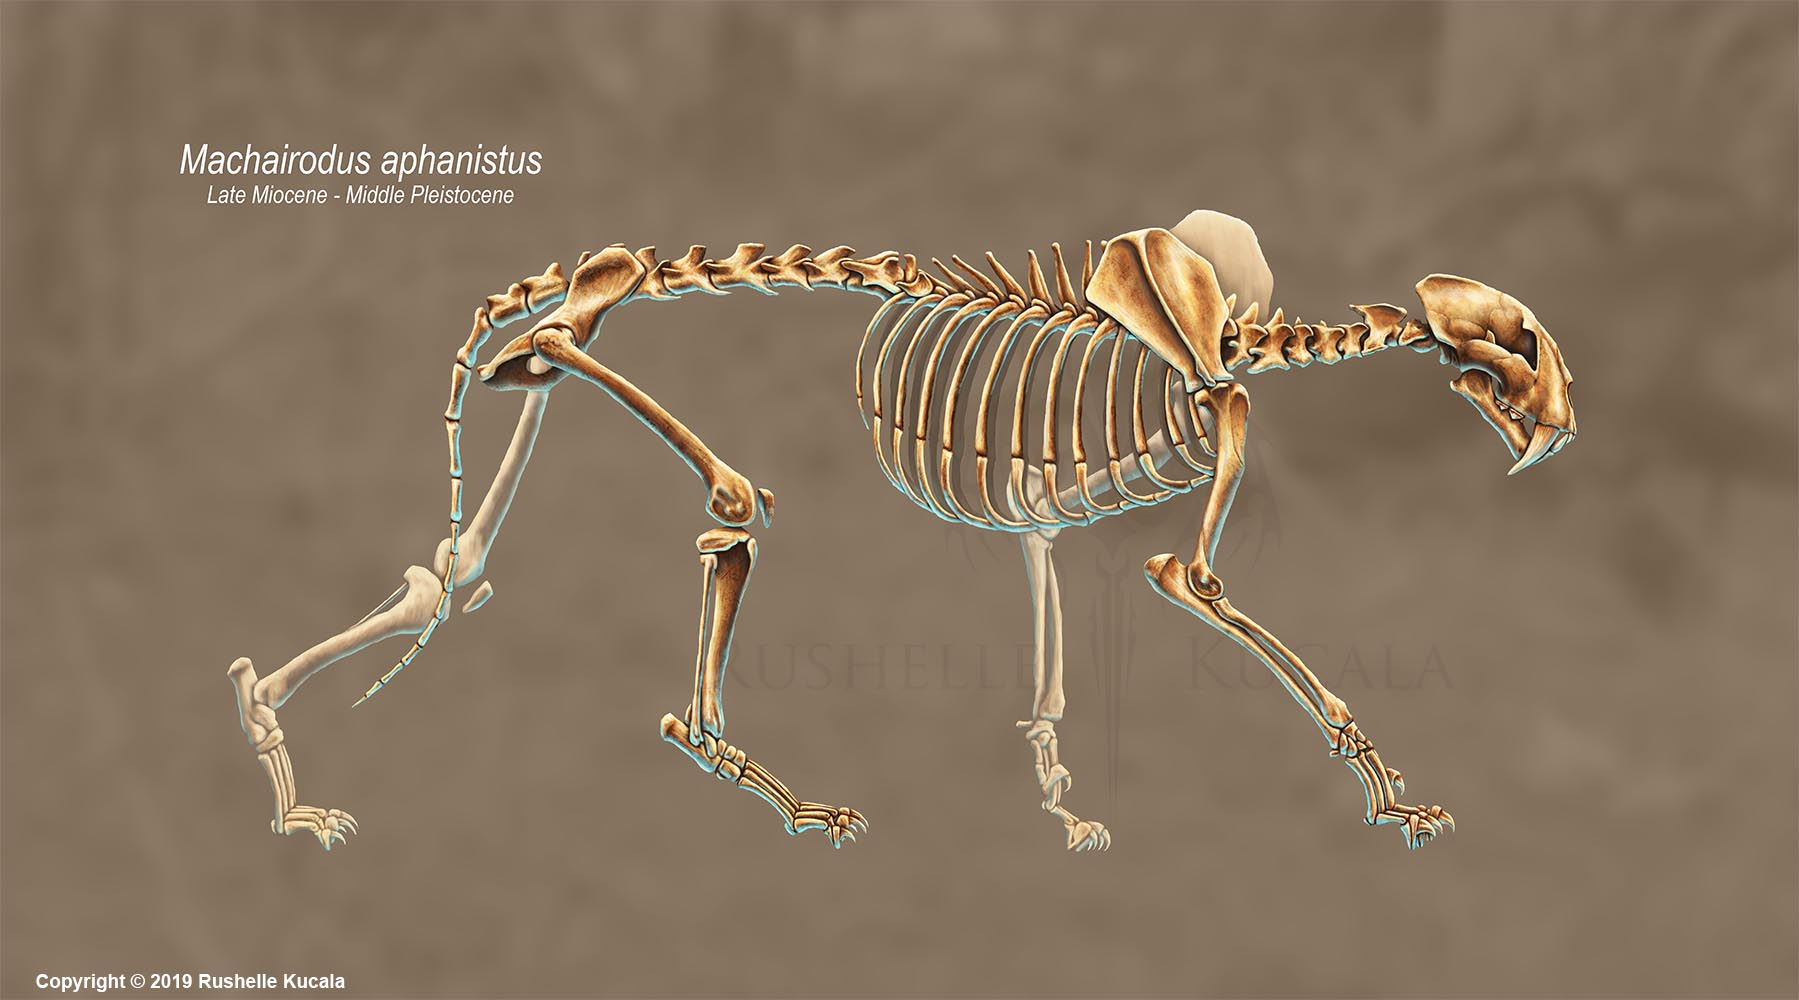 Machairodus Aphanistus Skeleton Study (No Labels)